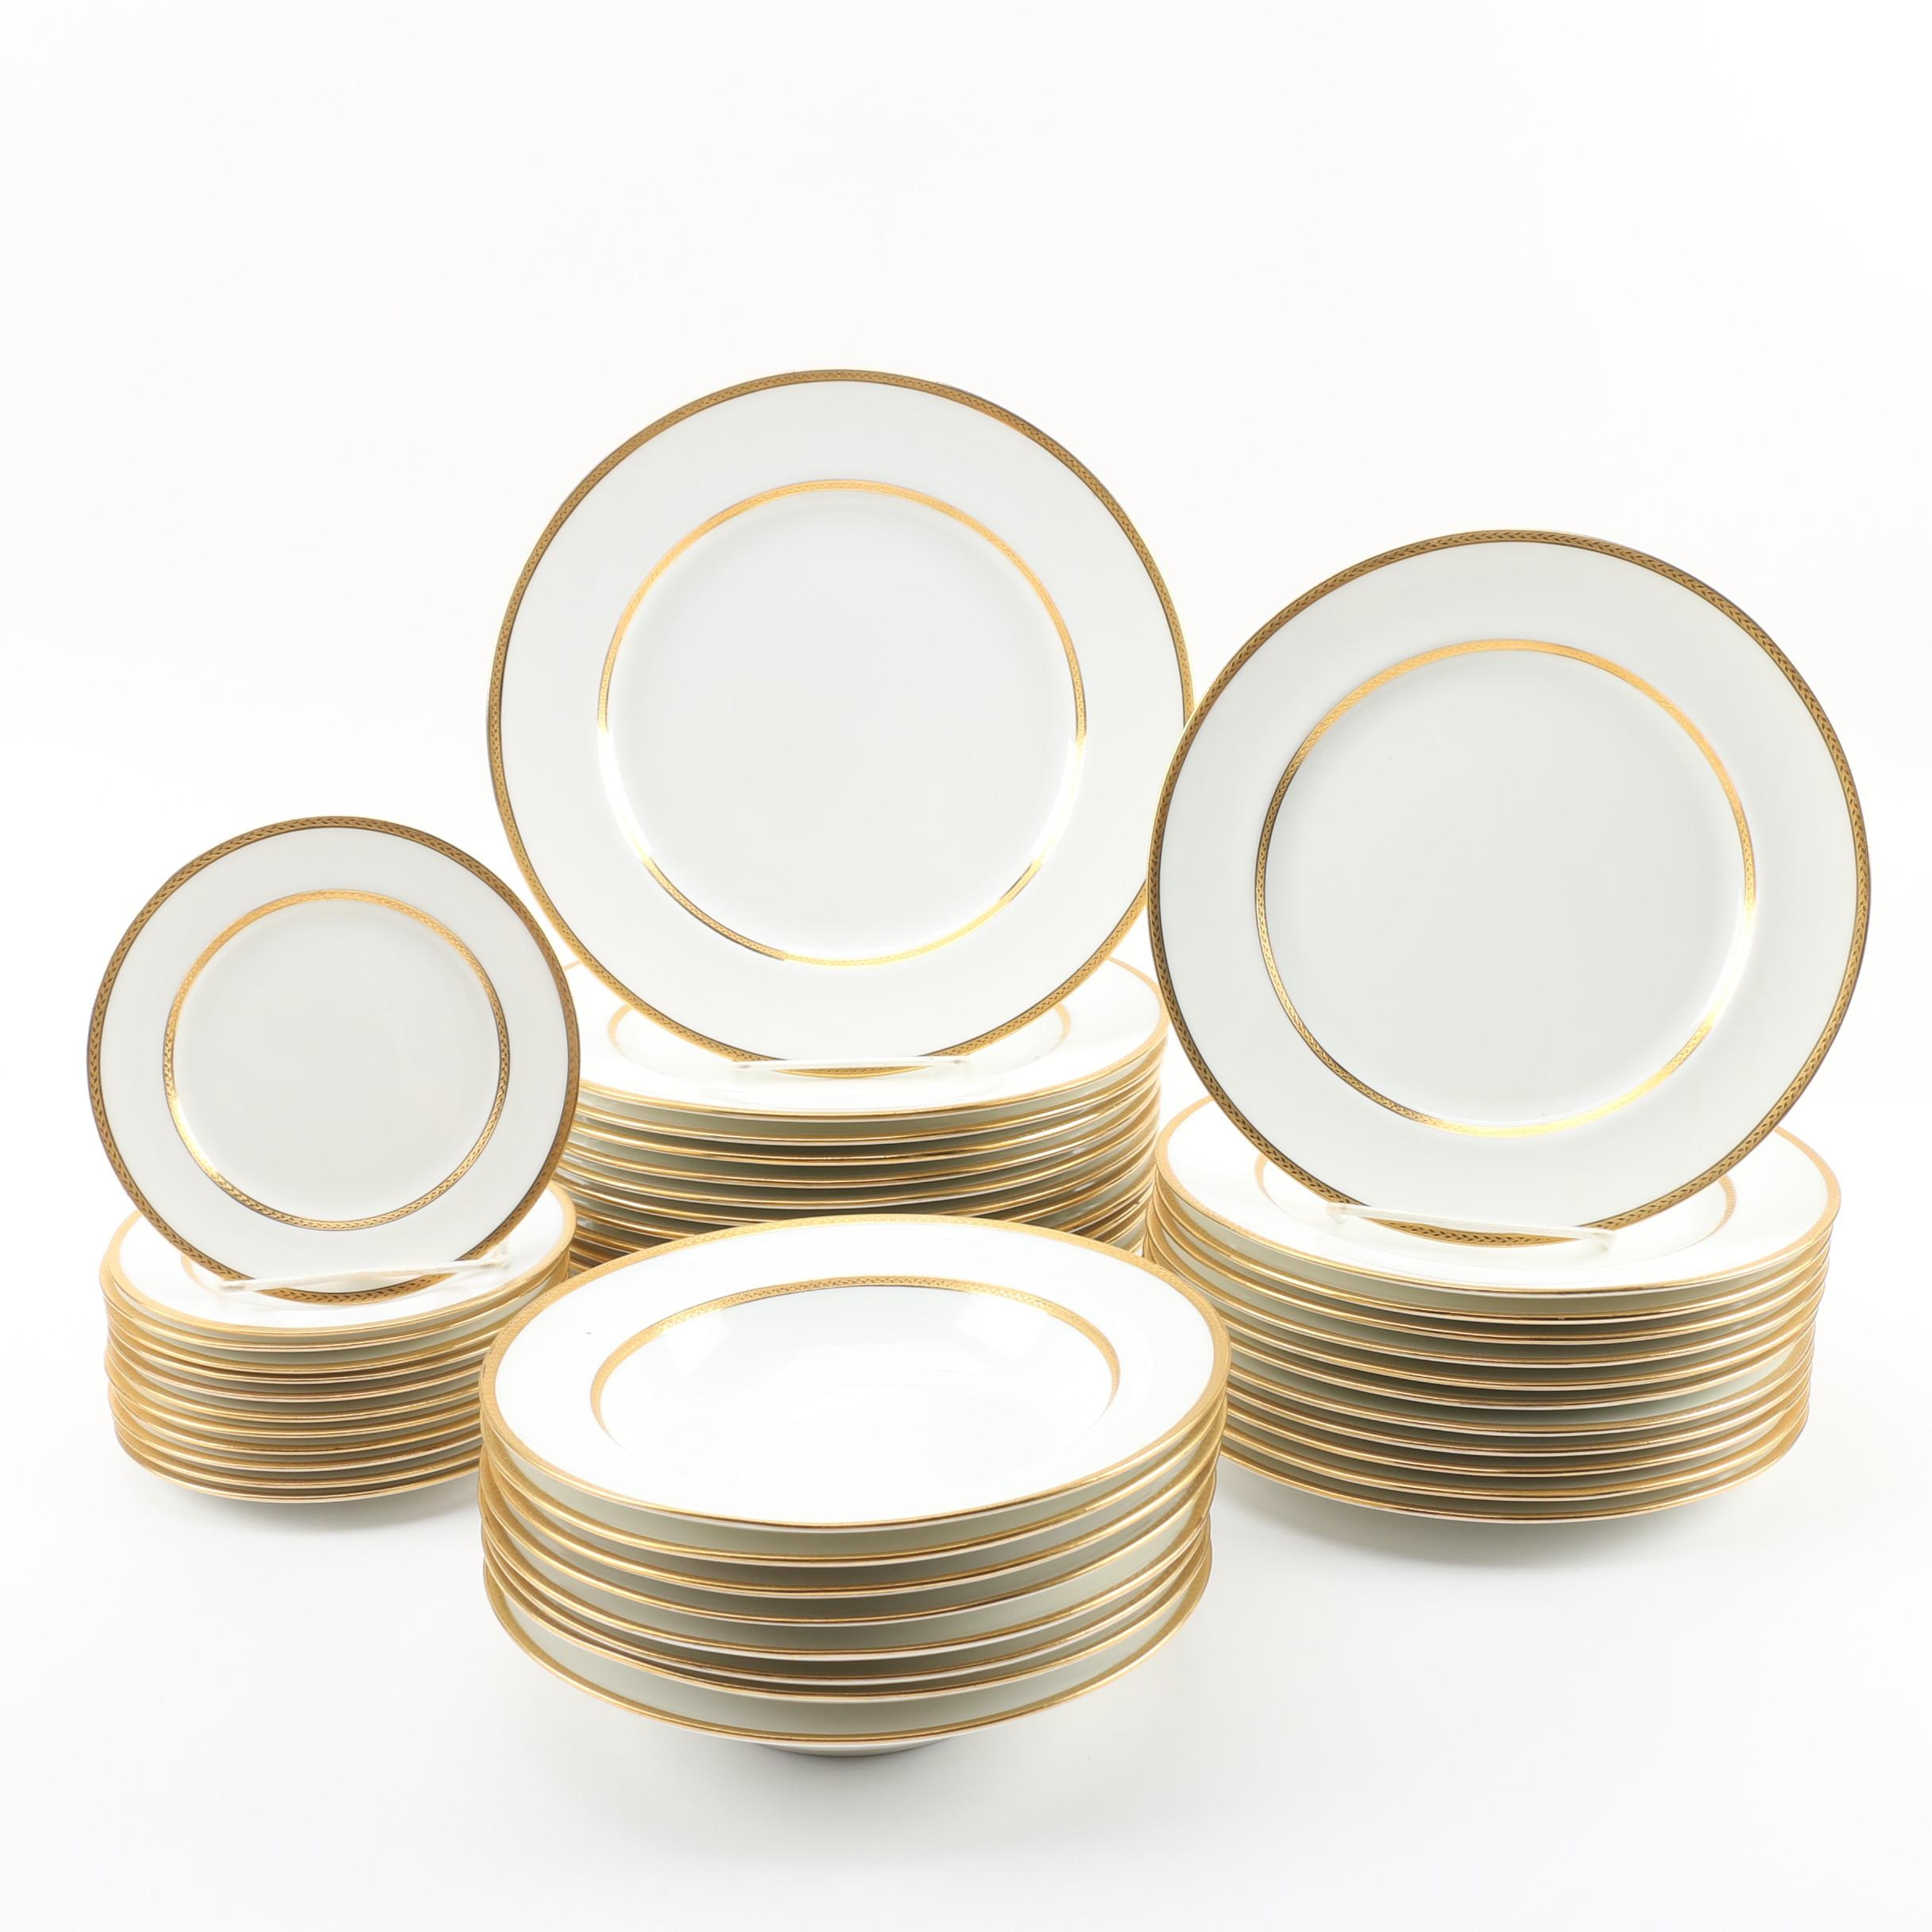 Royal Doulton Porcelain Dinnerware, circa 1902-36